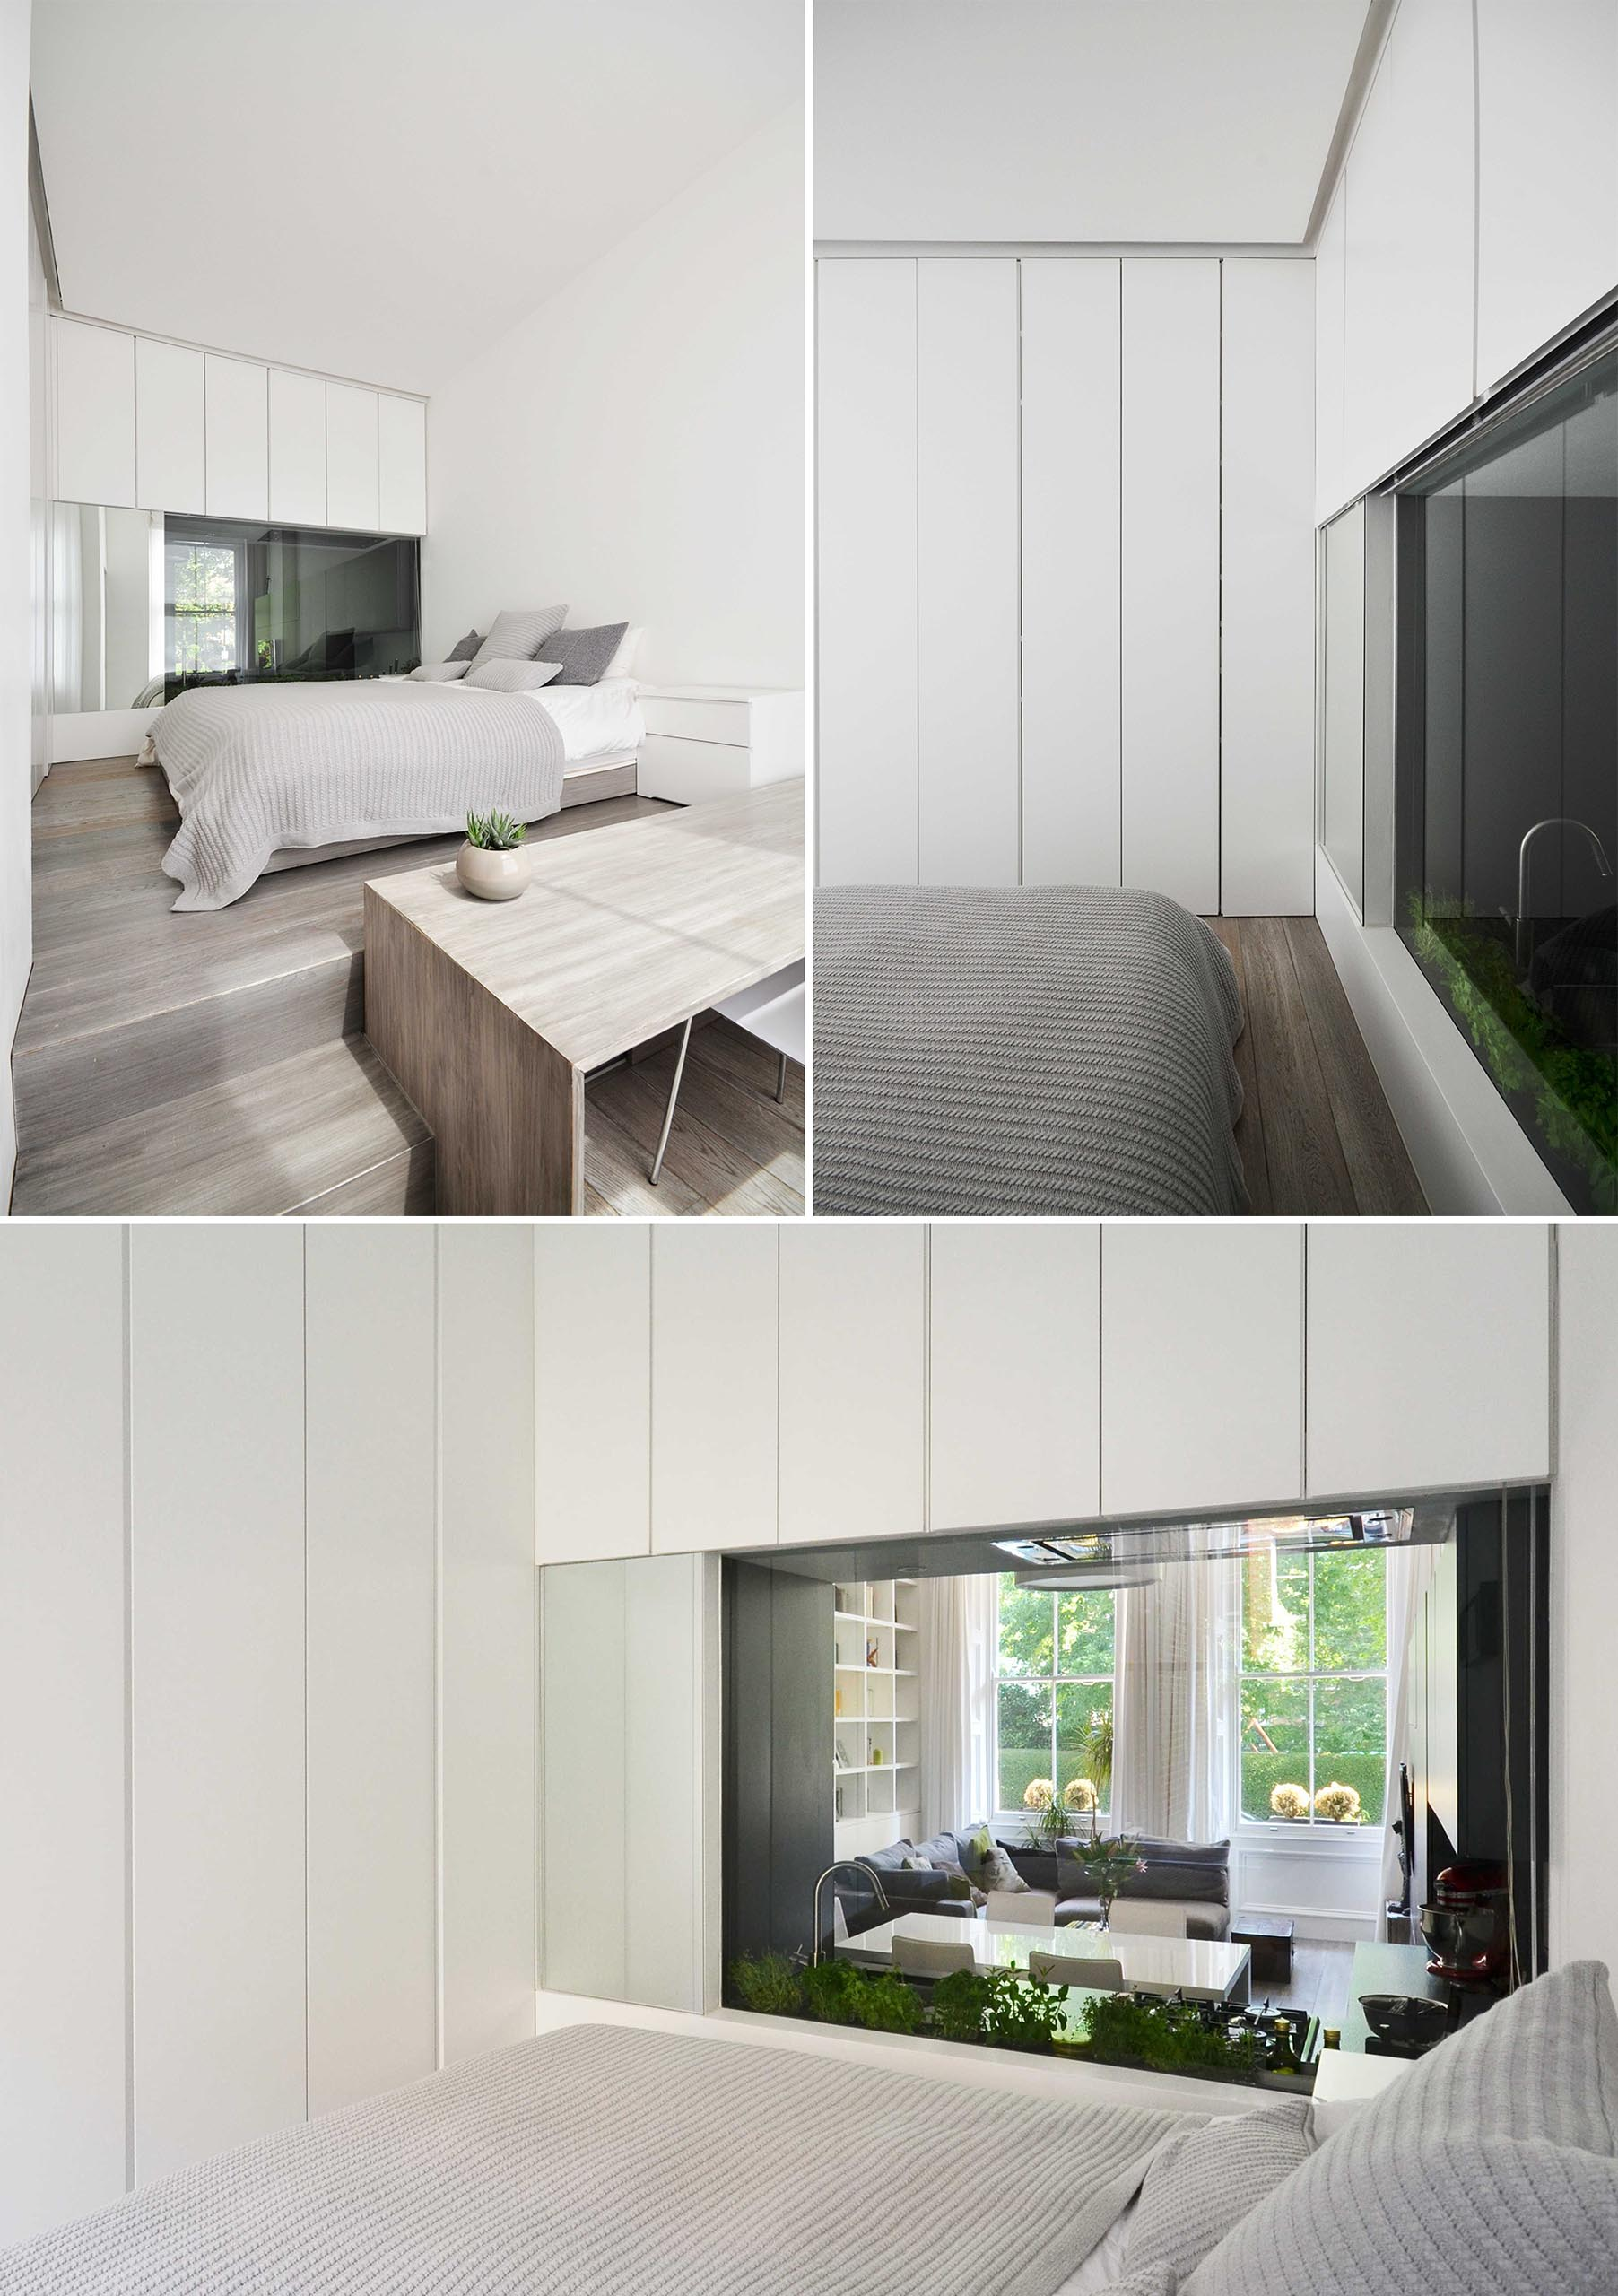 A bedroom with a window that looks through to the kitchen.